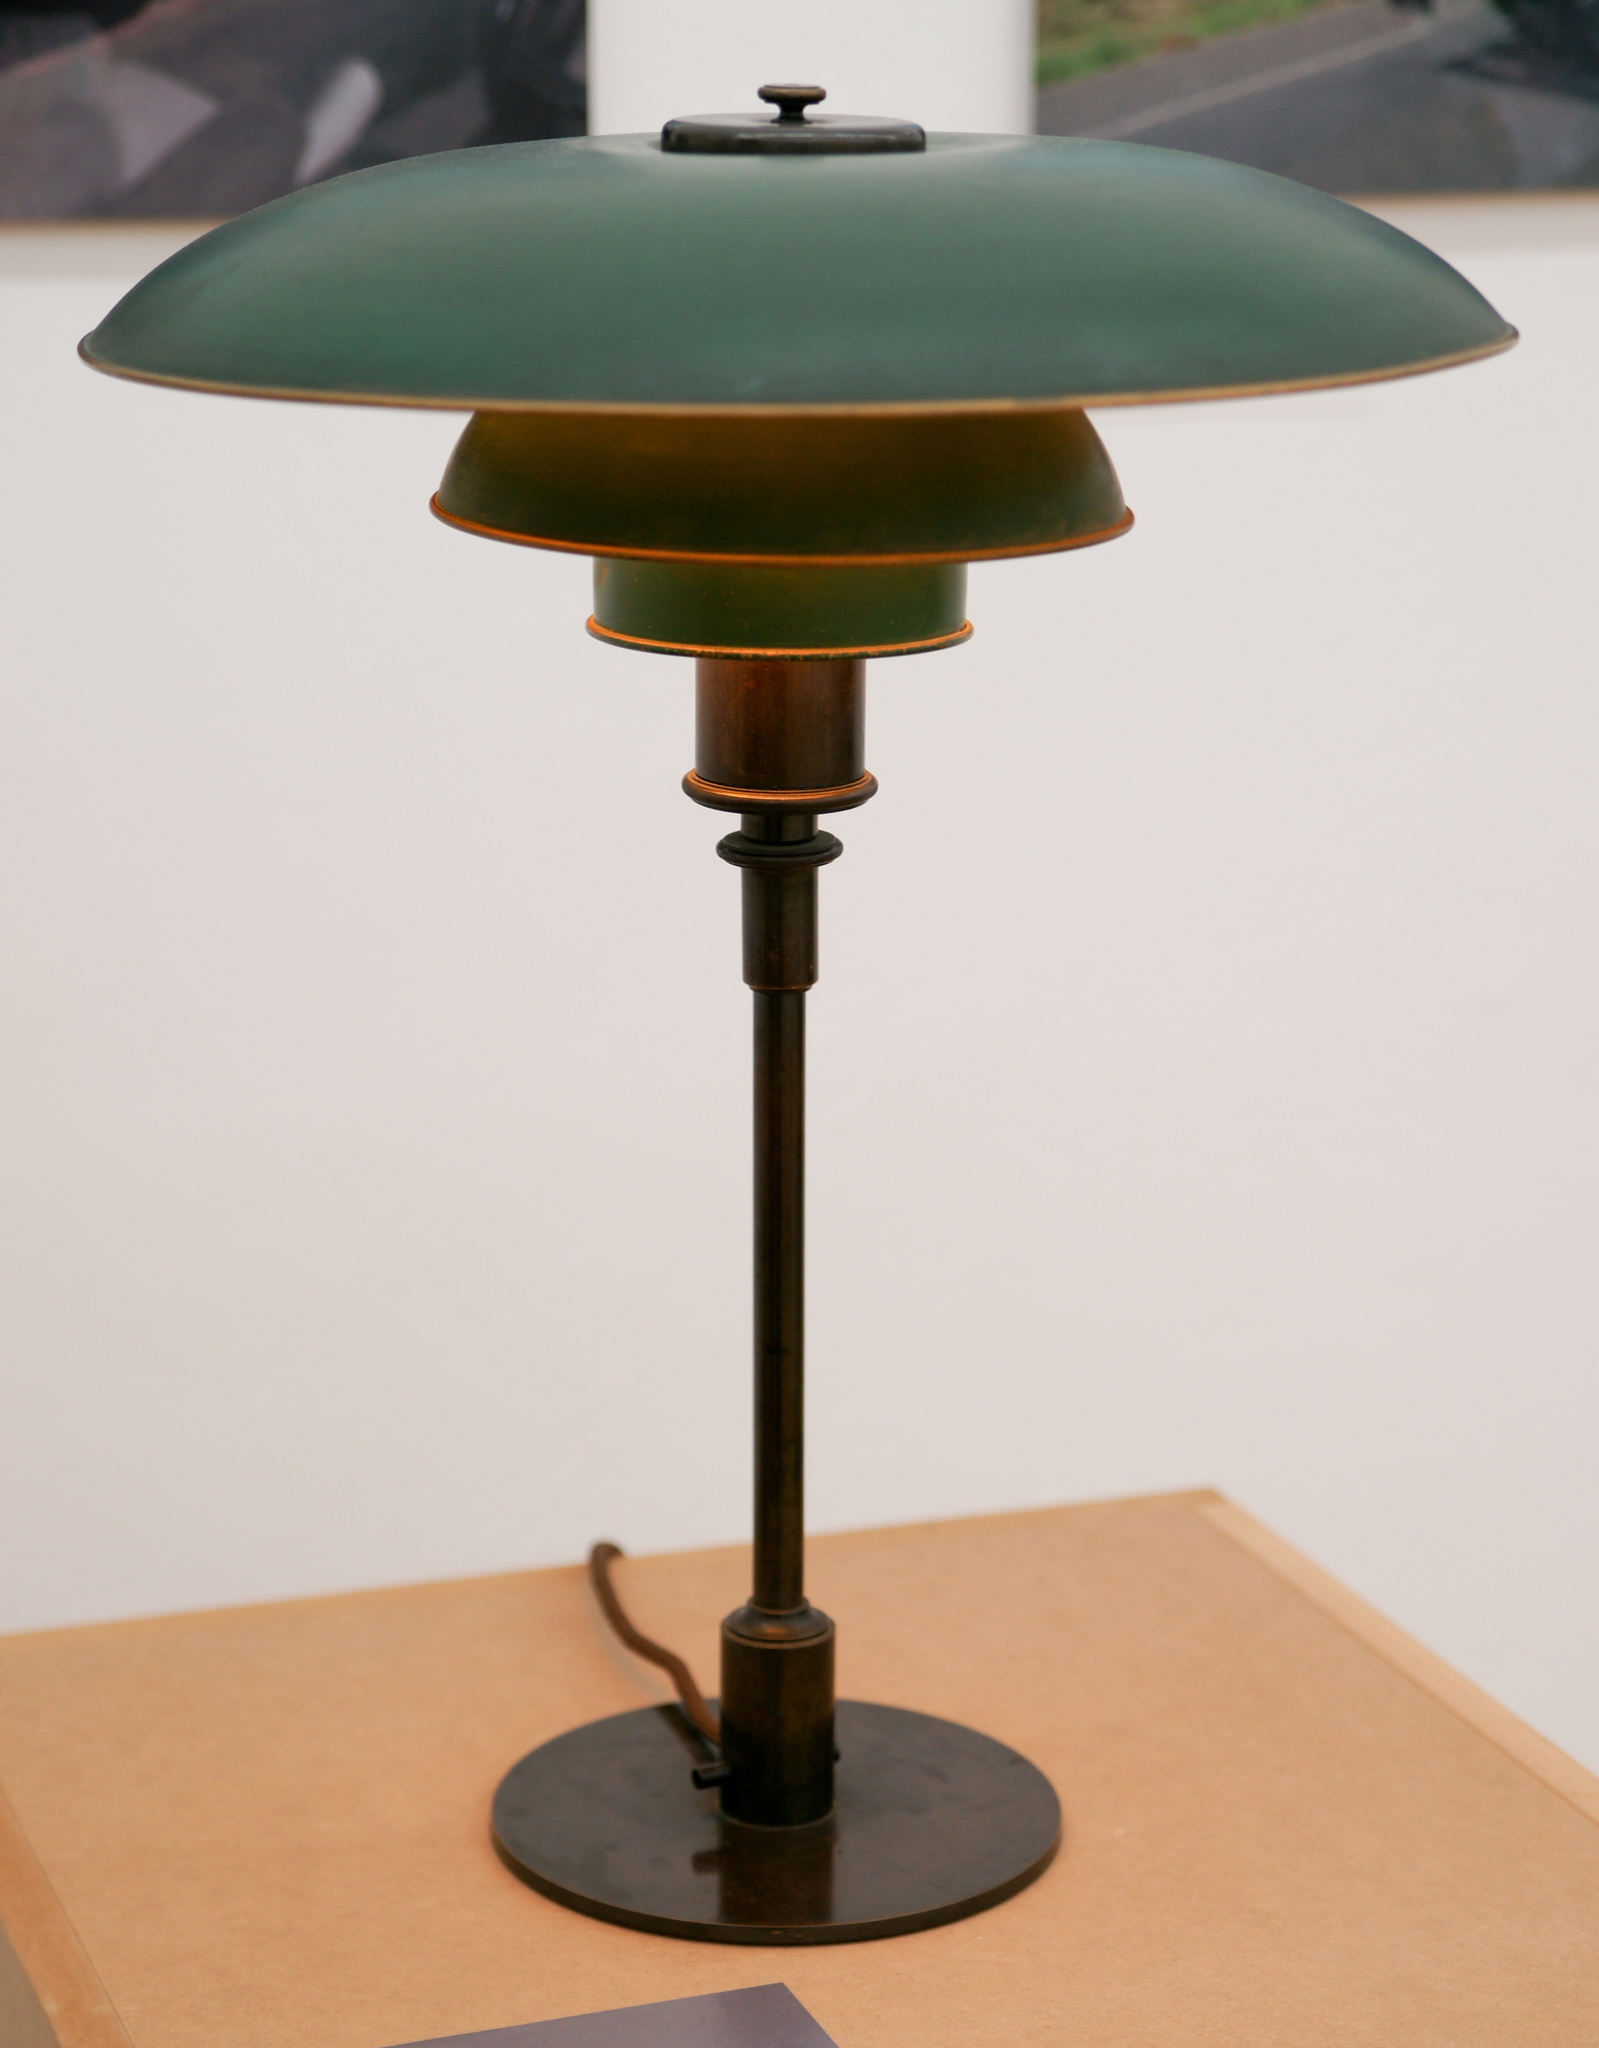 replica louis poulsen table lamp by poul henningsen buy. Black Bedroom Furniture Sets. Home Design Ideas